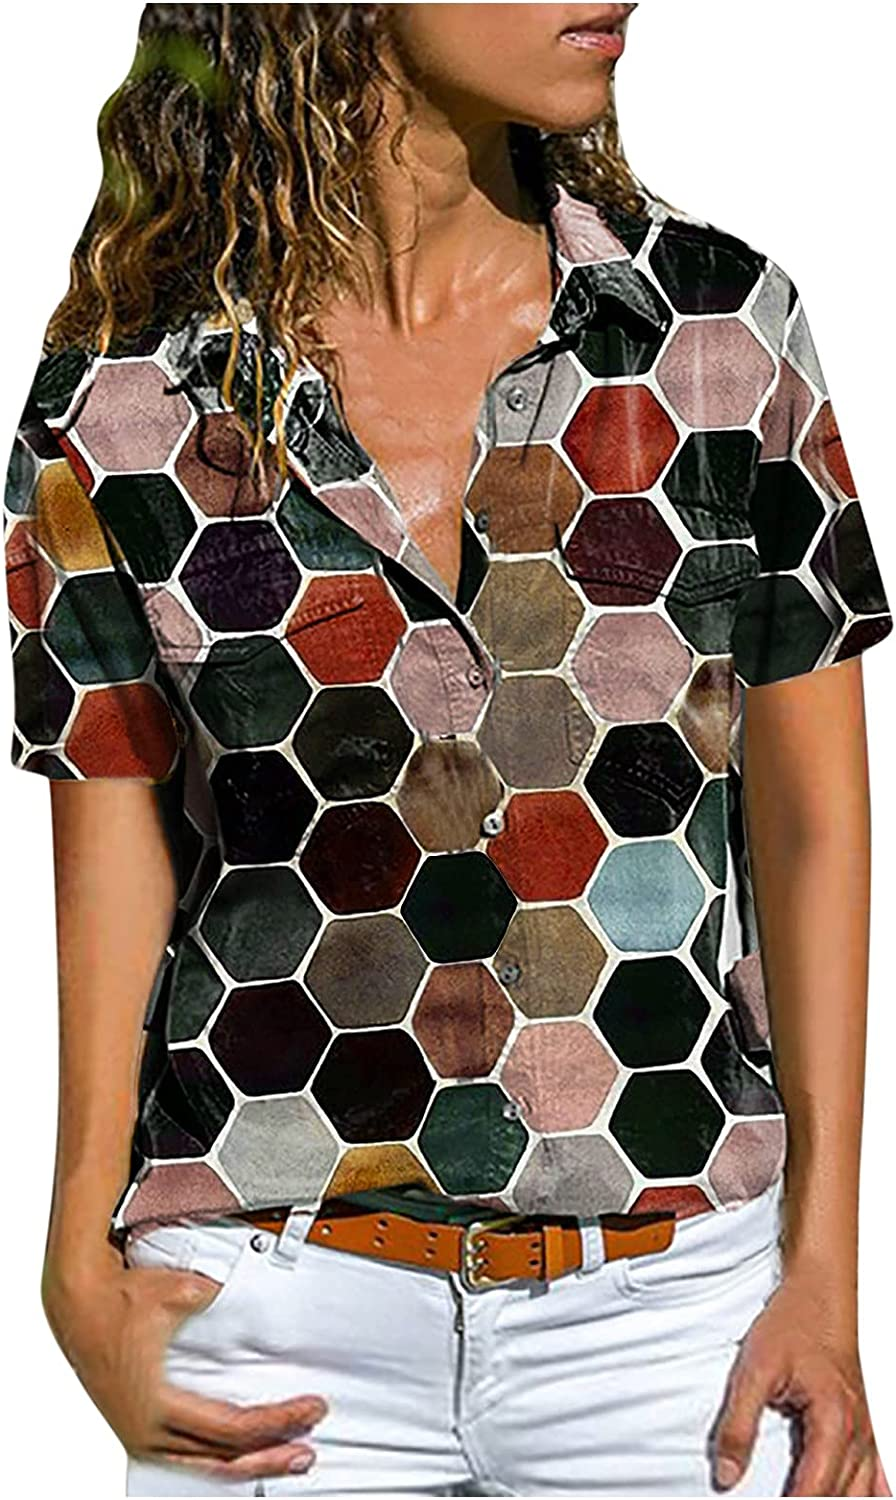 Women Max 84% OFF Lapel Buttons Shirt Hawaii Blouse Short NEW before selling Sleeve Tun V-Neck